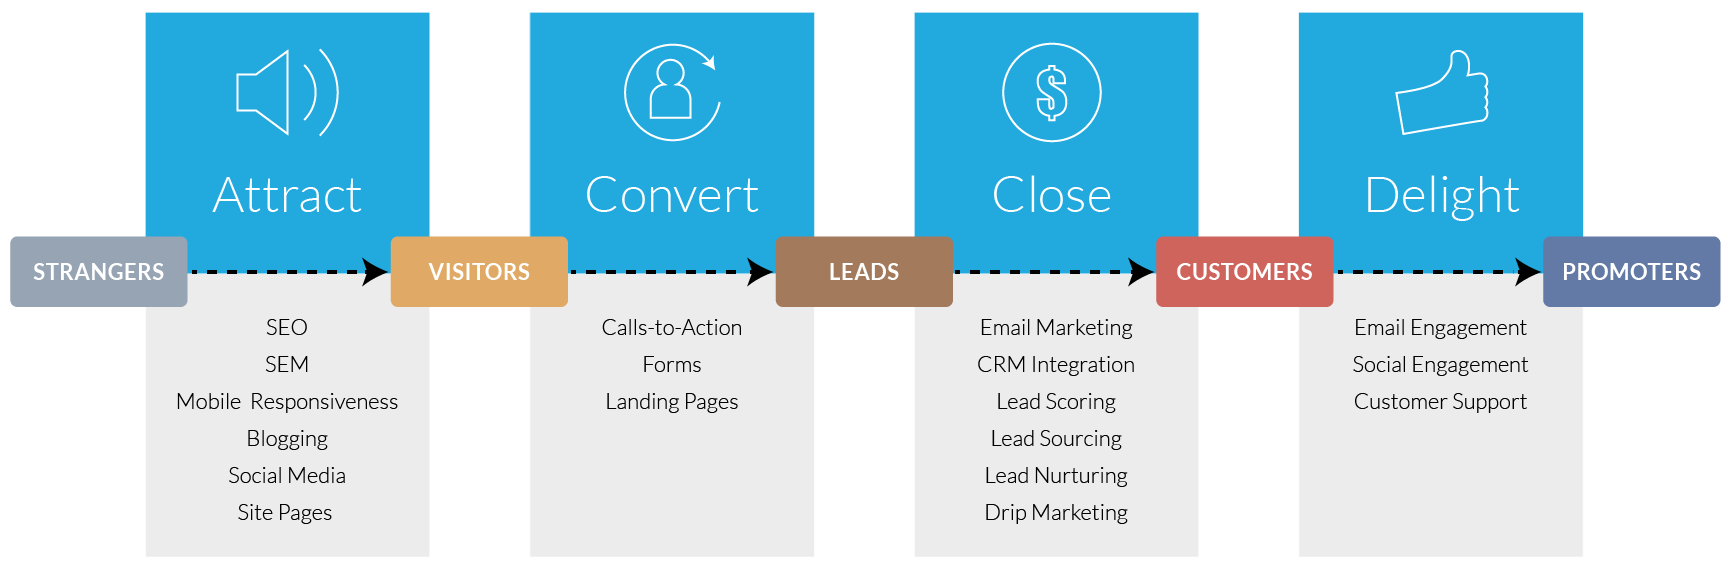 Inbound Marketing Methodology | Rhino Digital Media